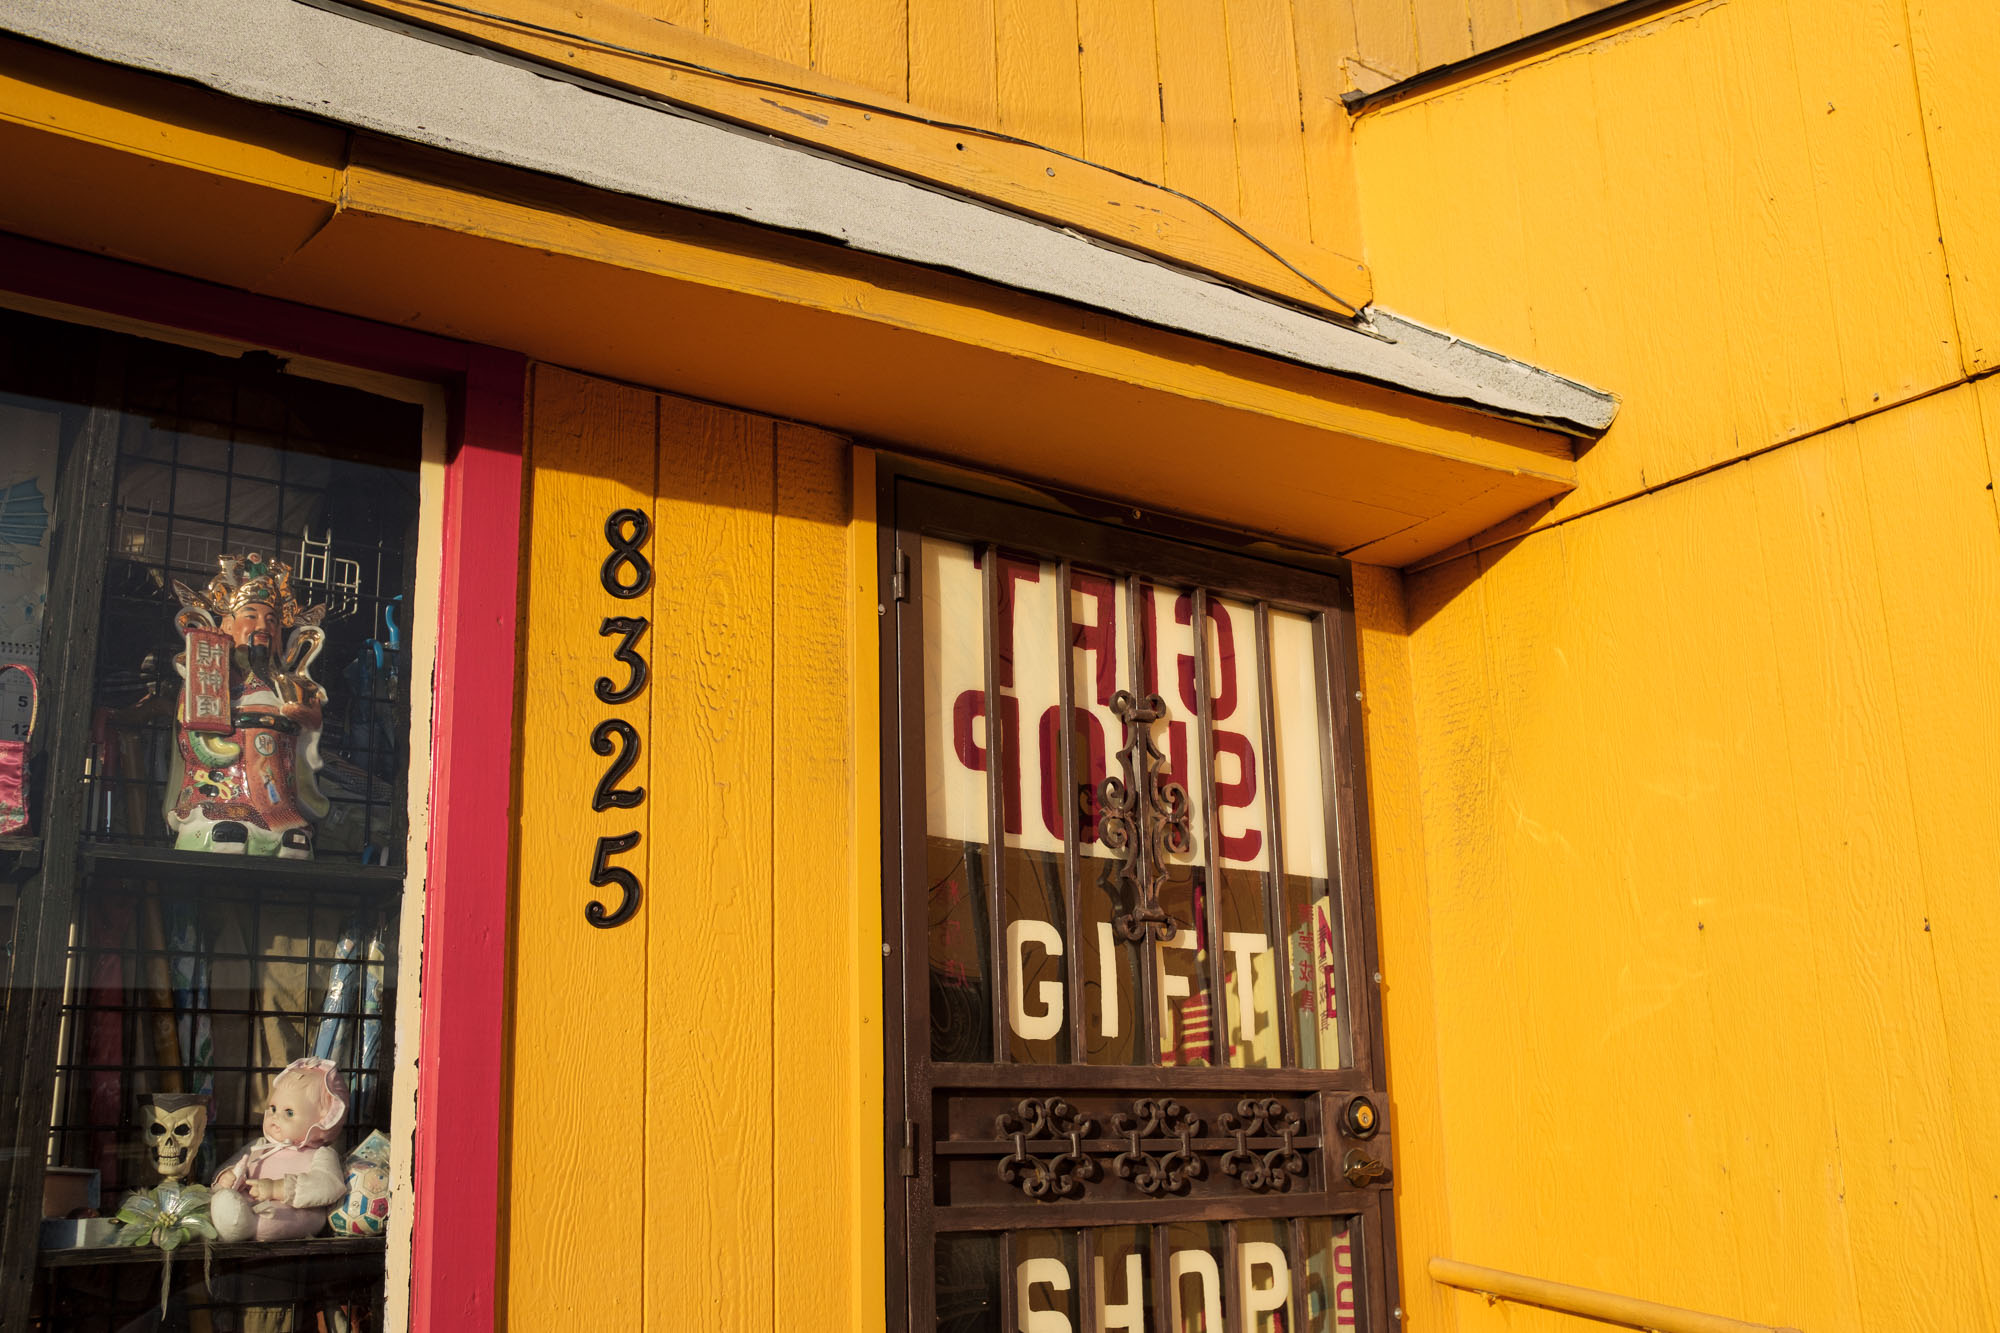 the front of a yellow building, with bars on the front door